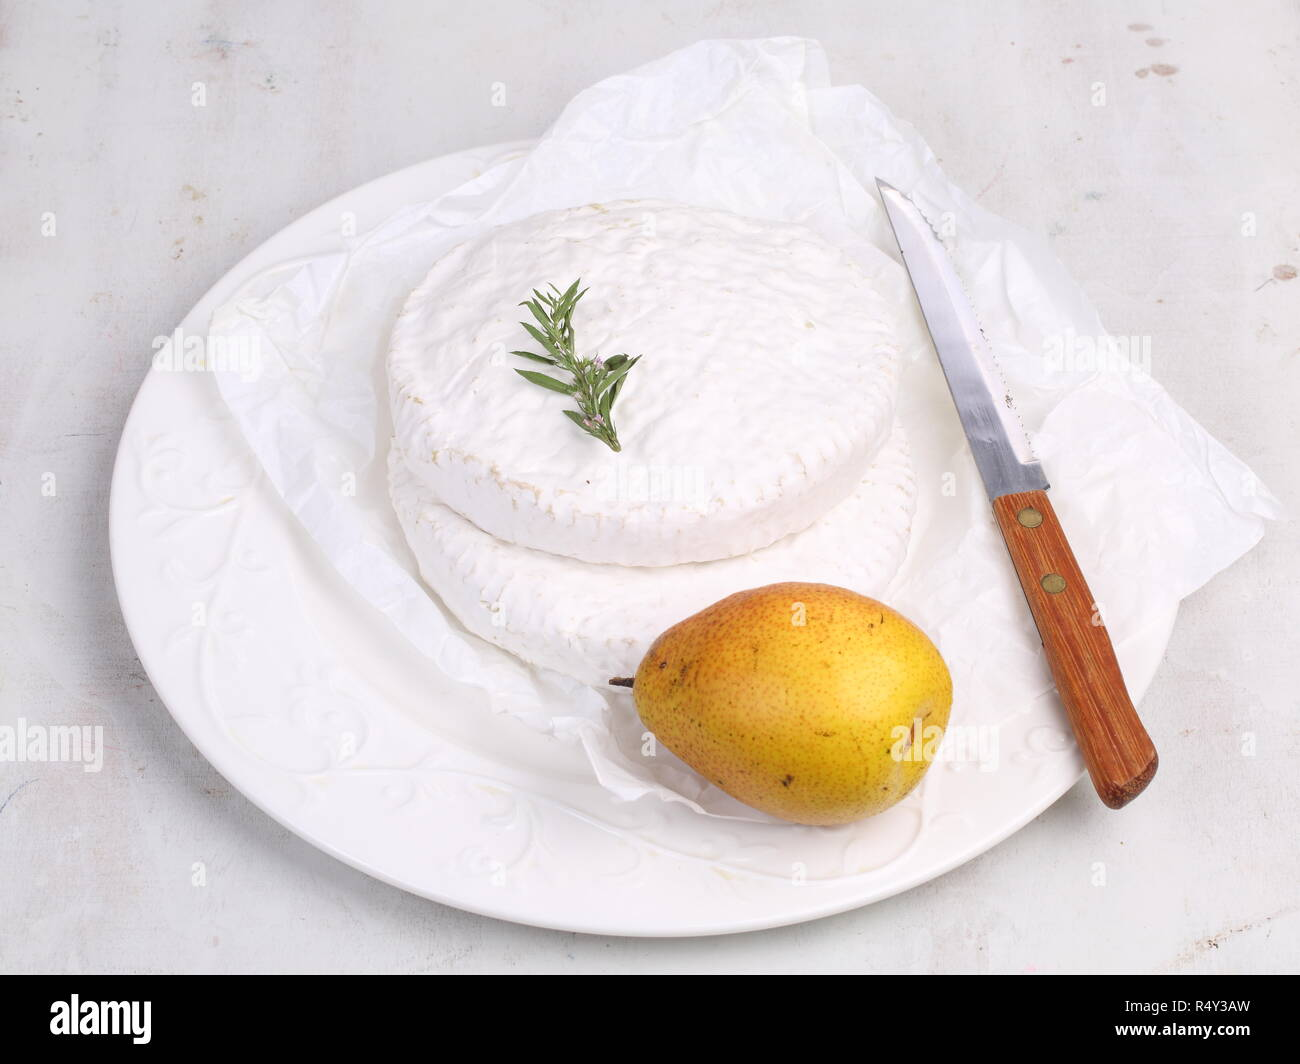 Camembert with pear on white background - Stock Image